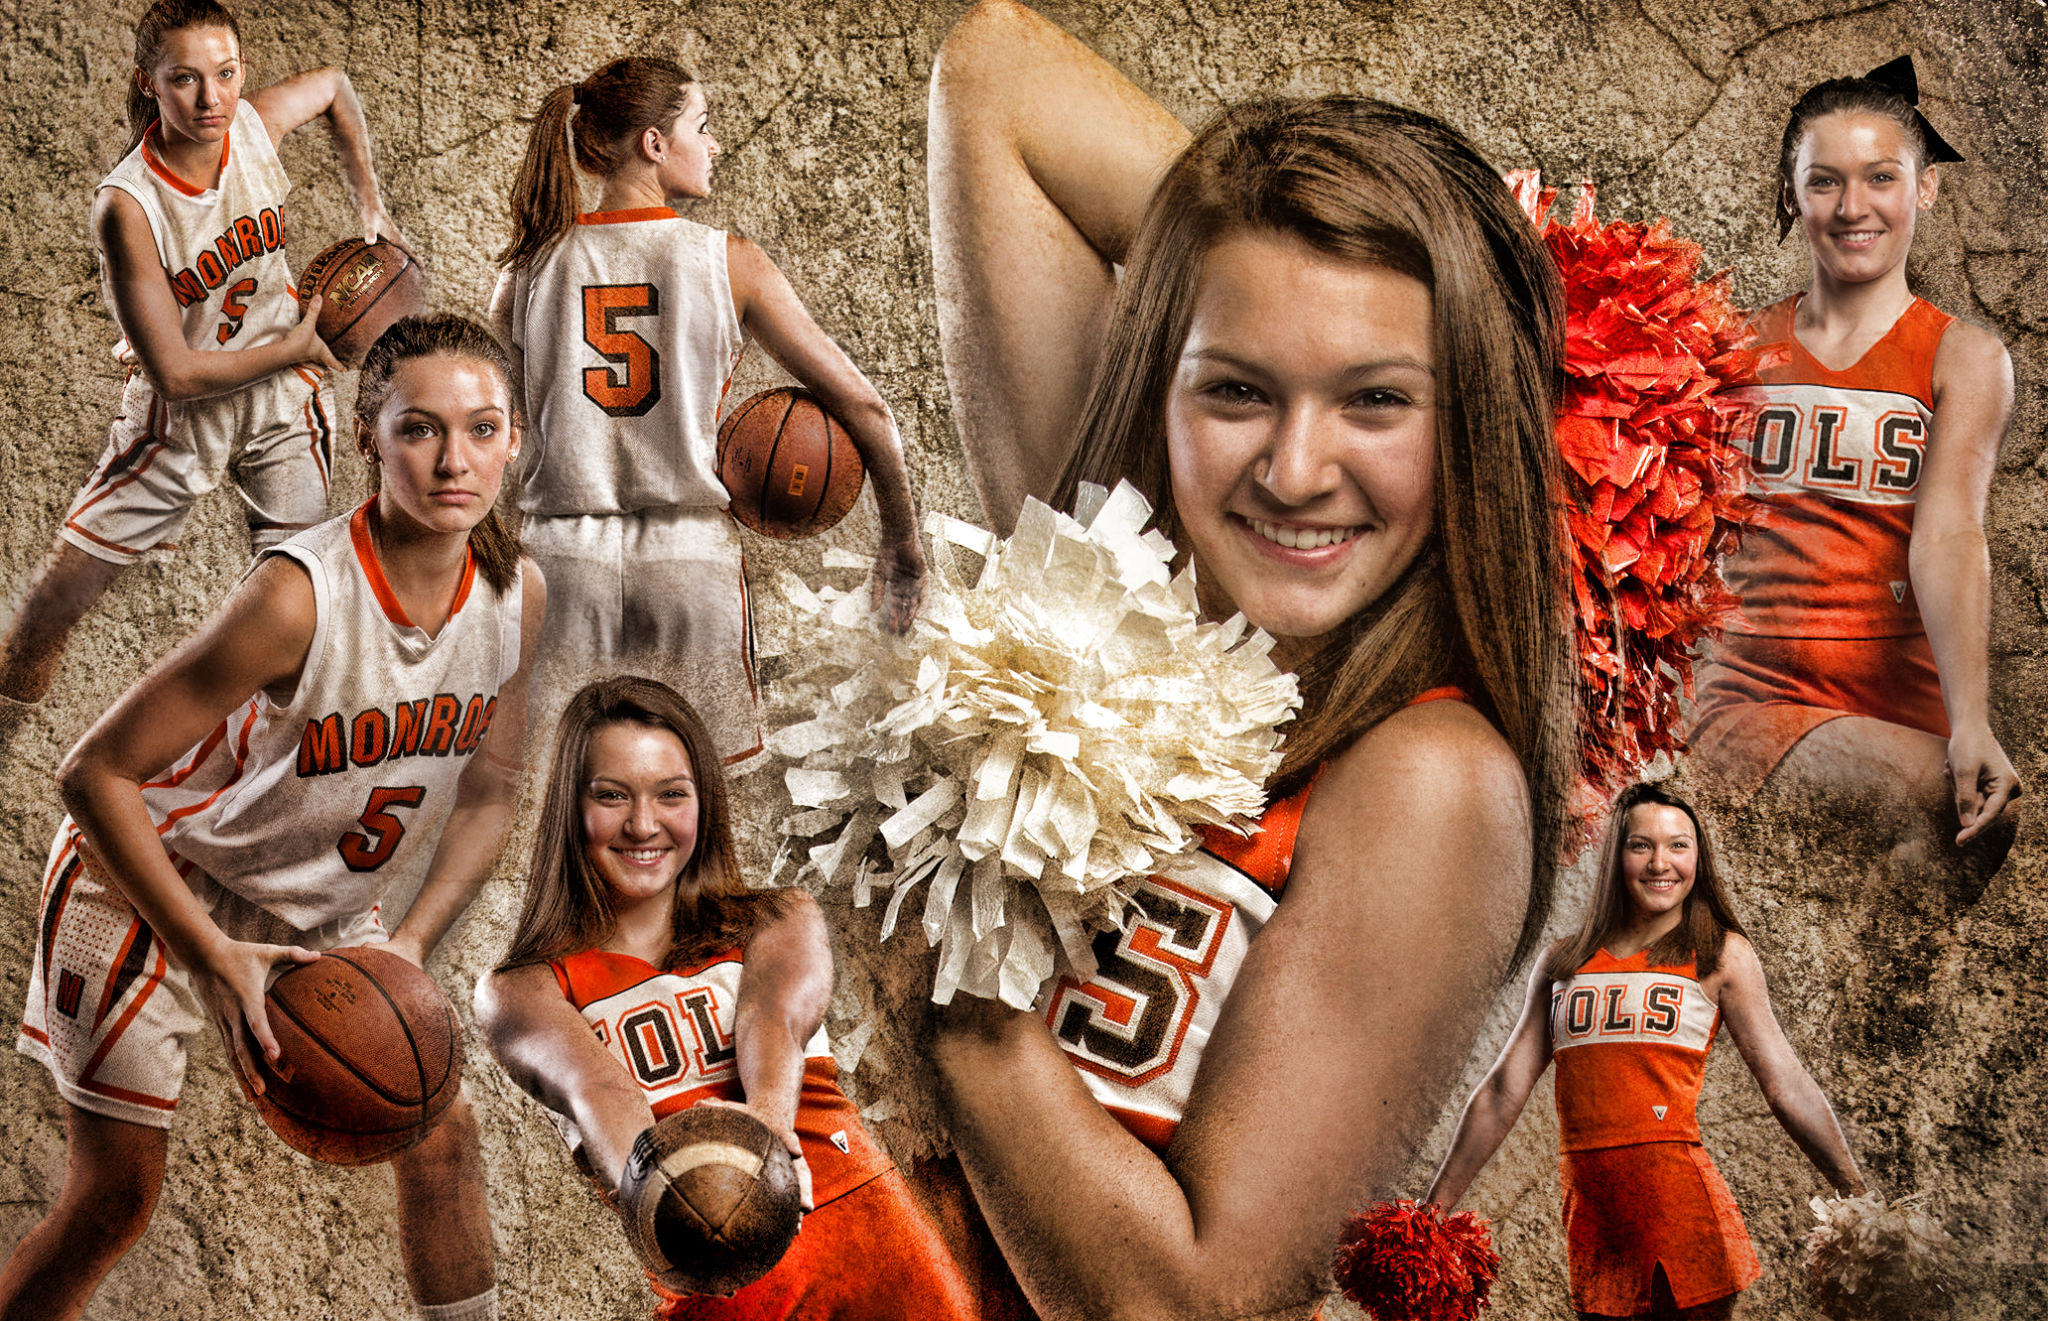 Sports Photography and Hobbies